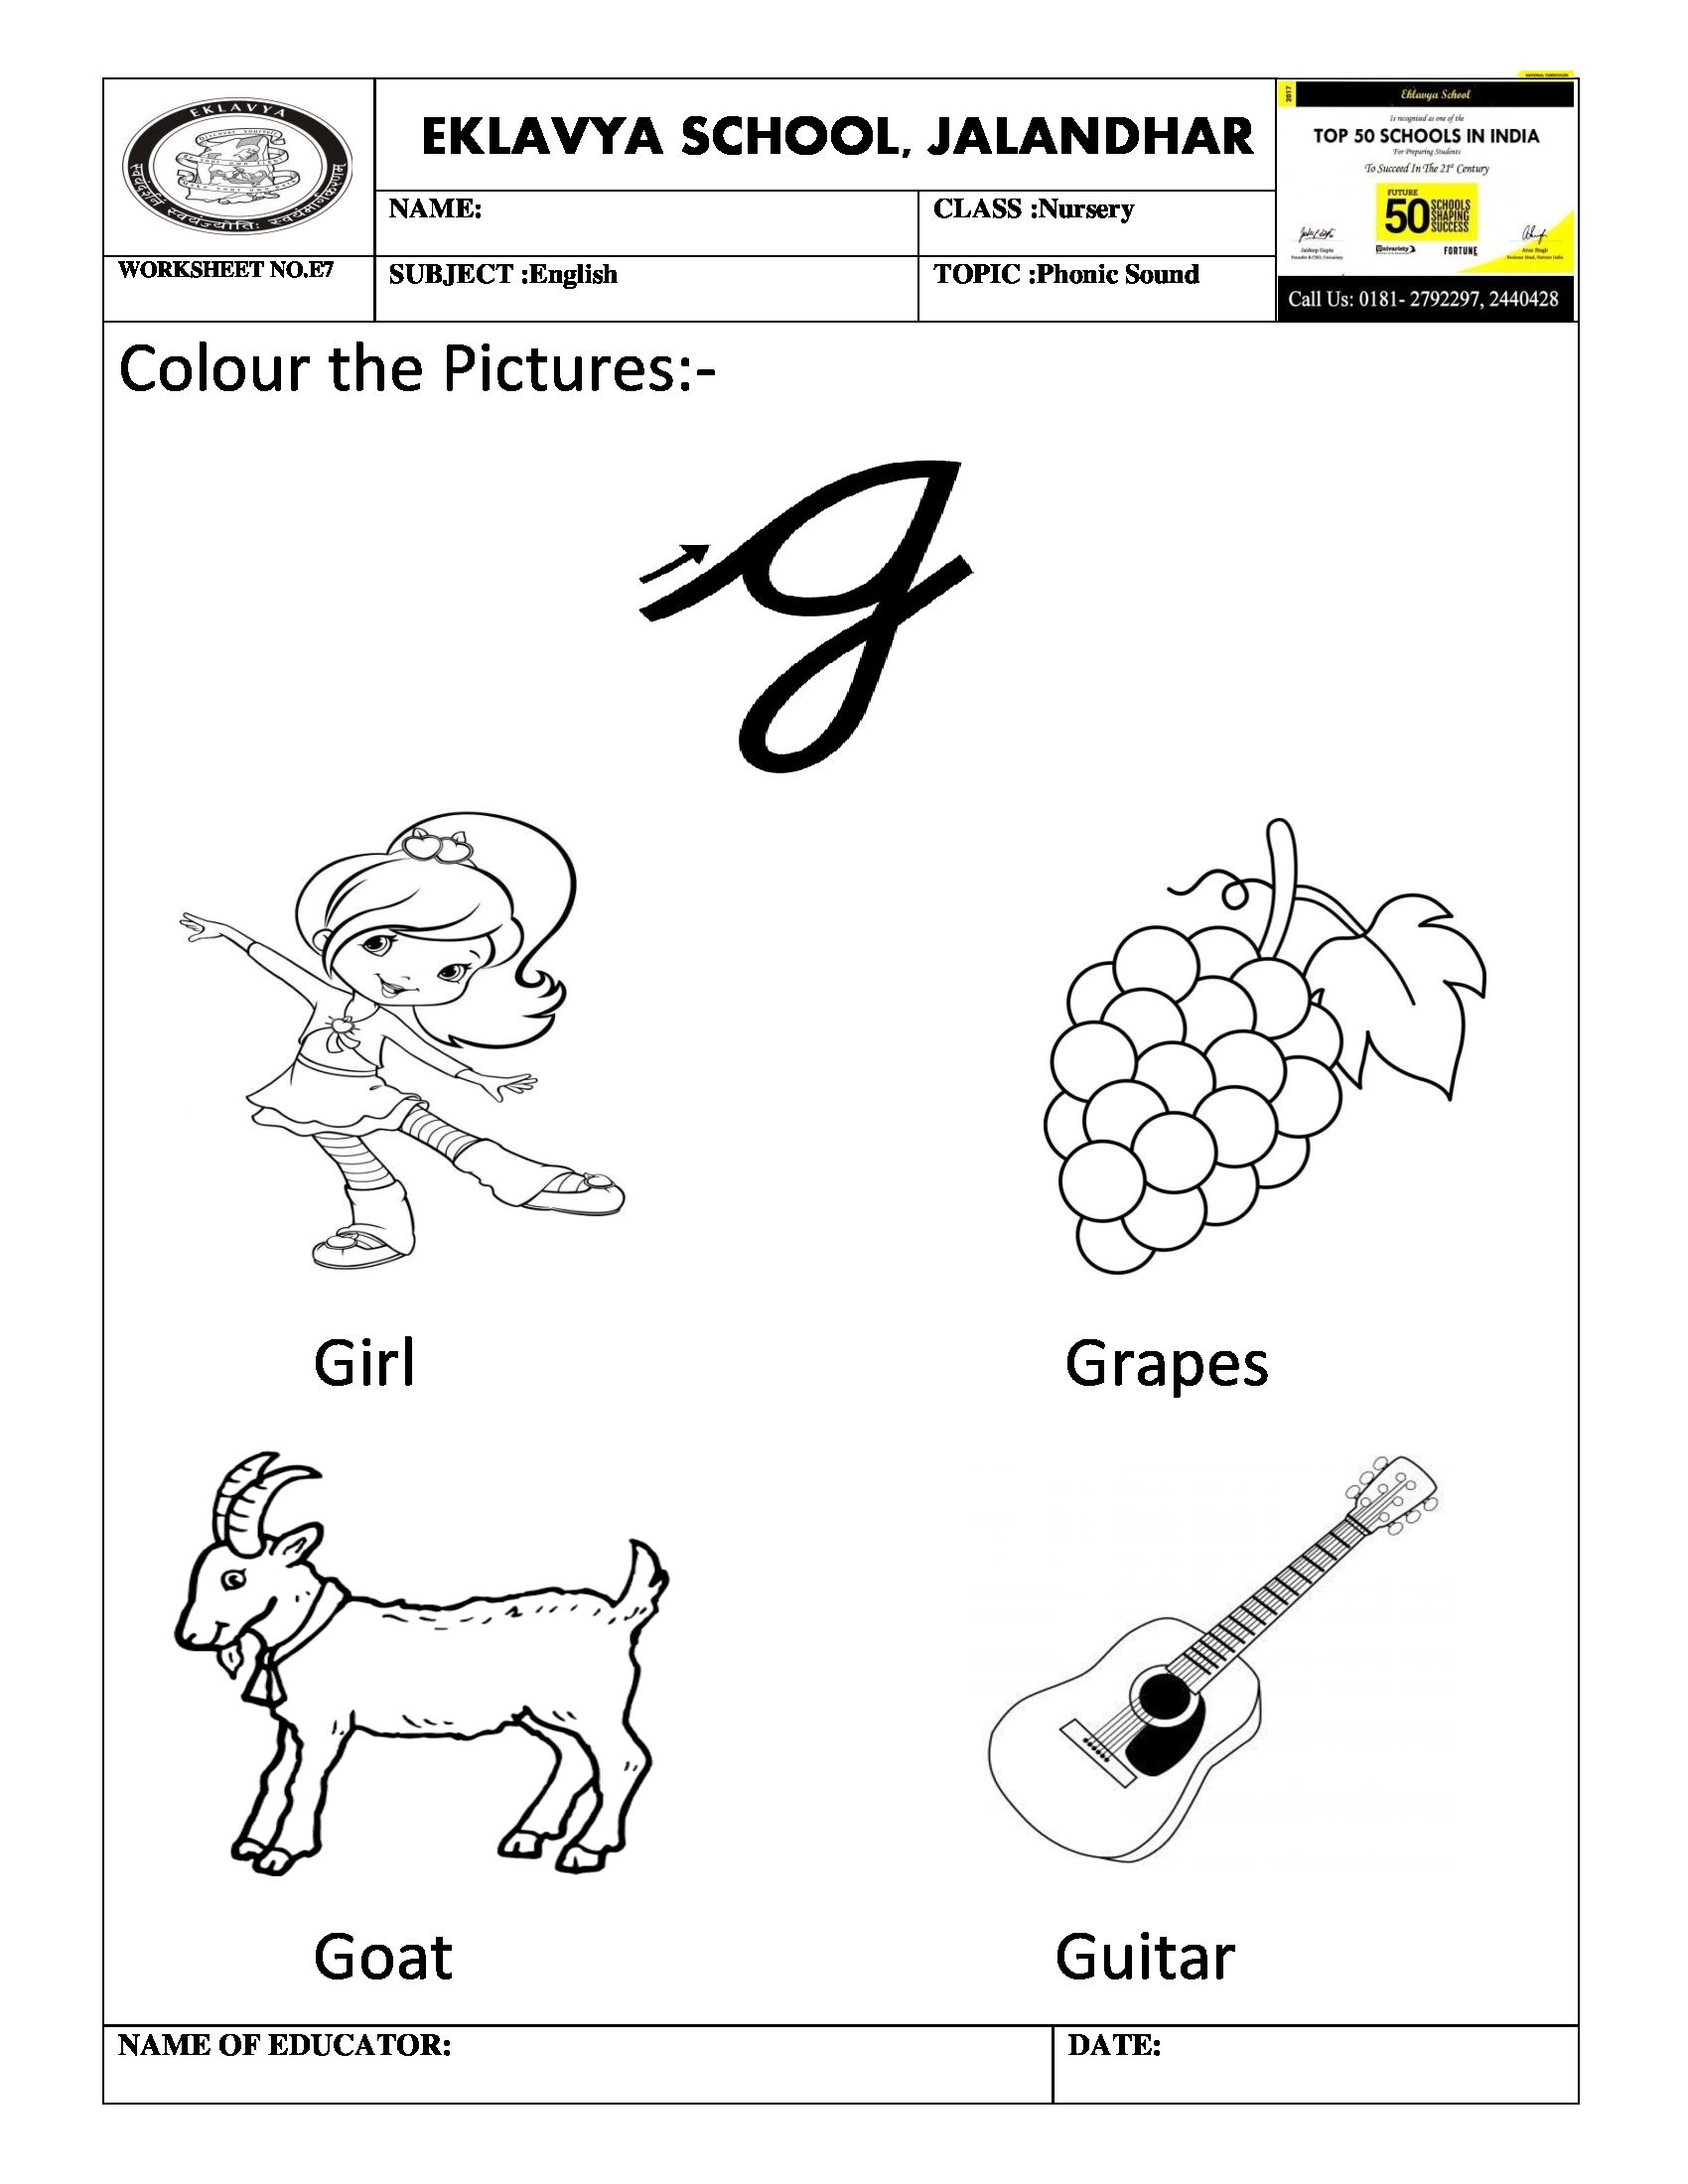 Worksheet On Phonic Sound G With Images